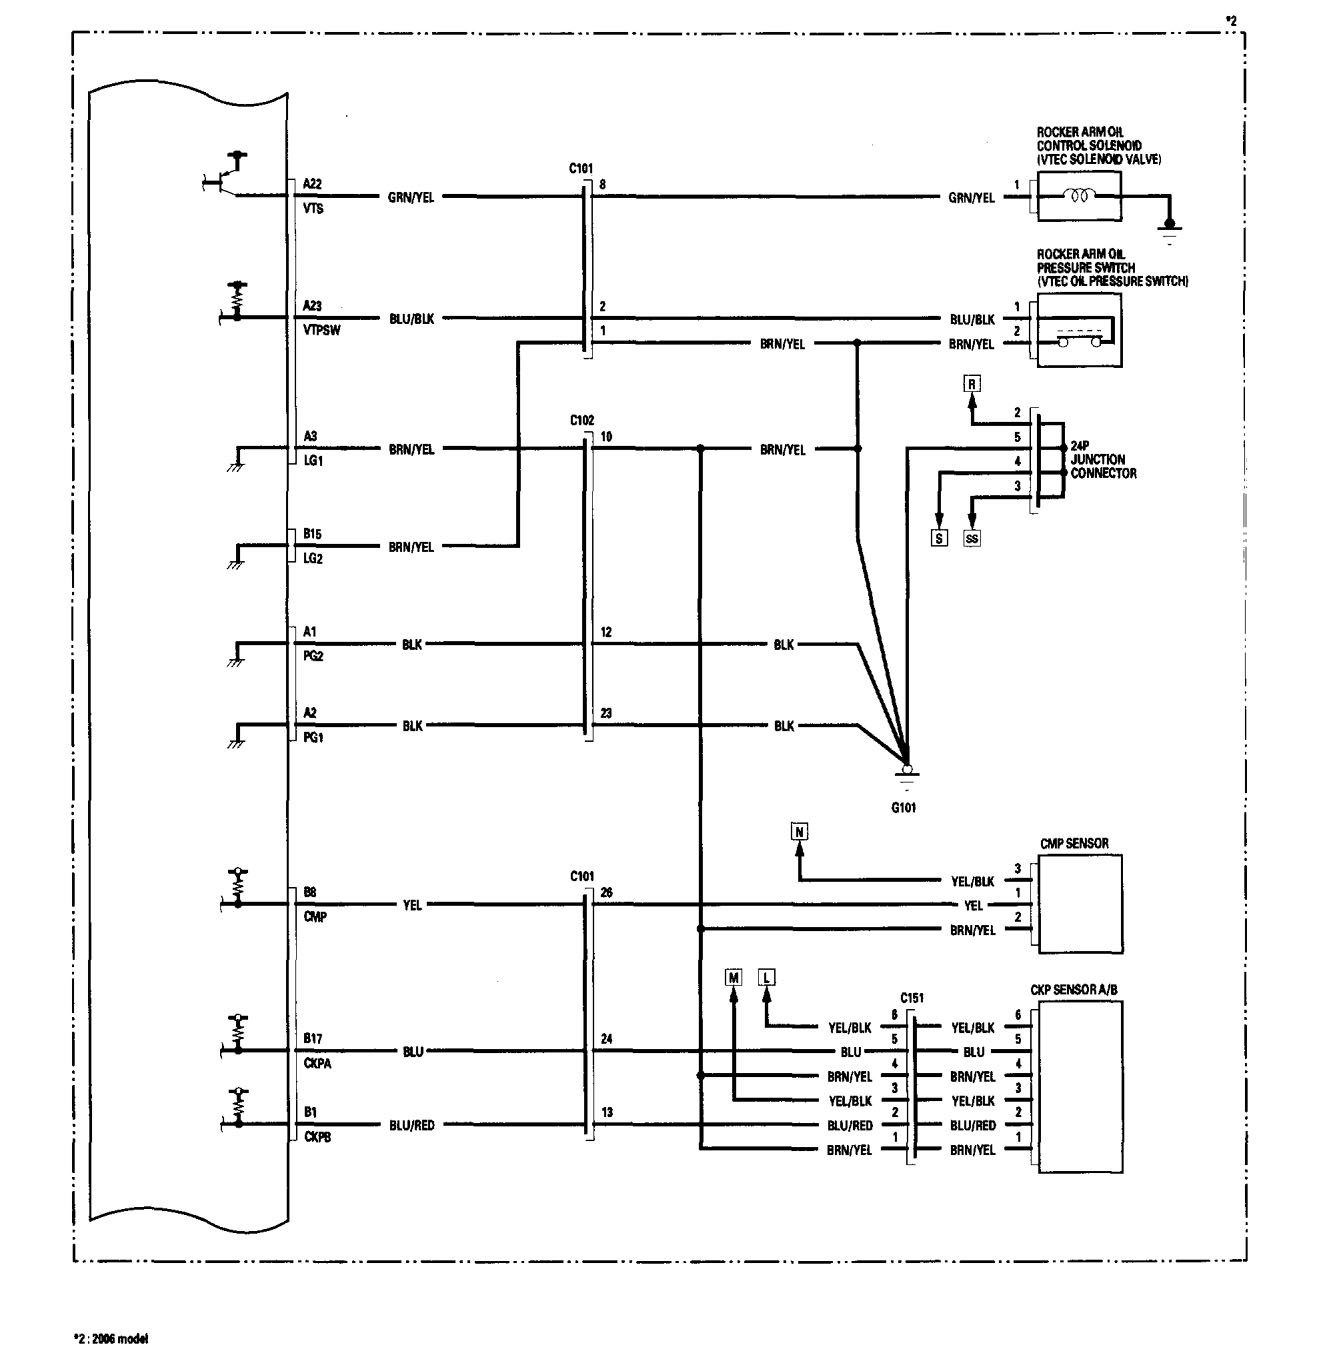 Acura Rl 2006 Wiring Diagrams Fuel Controls Carknowledge B17 Harness Diagram Control Part 6